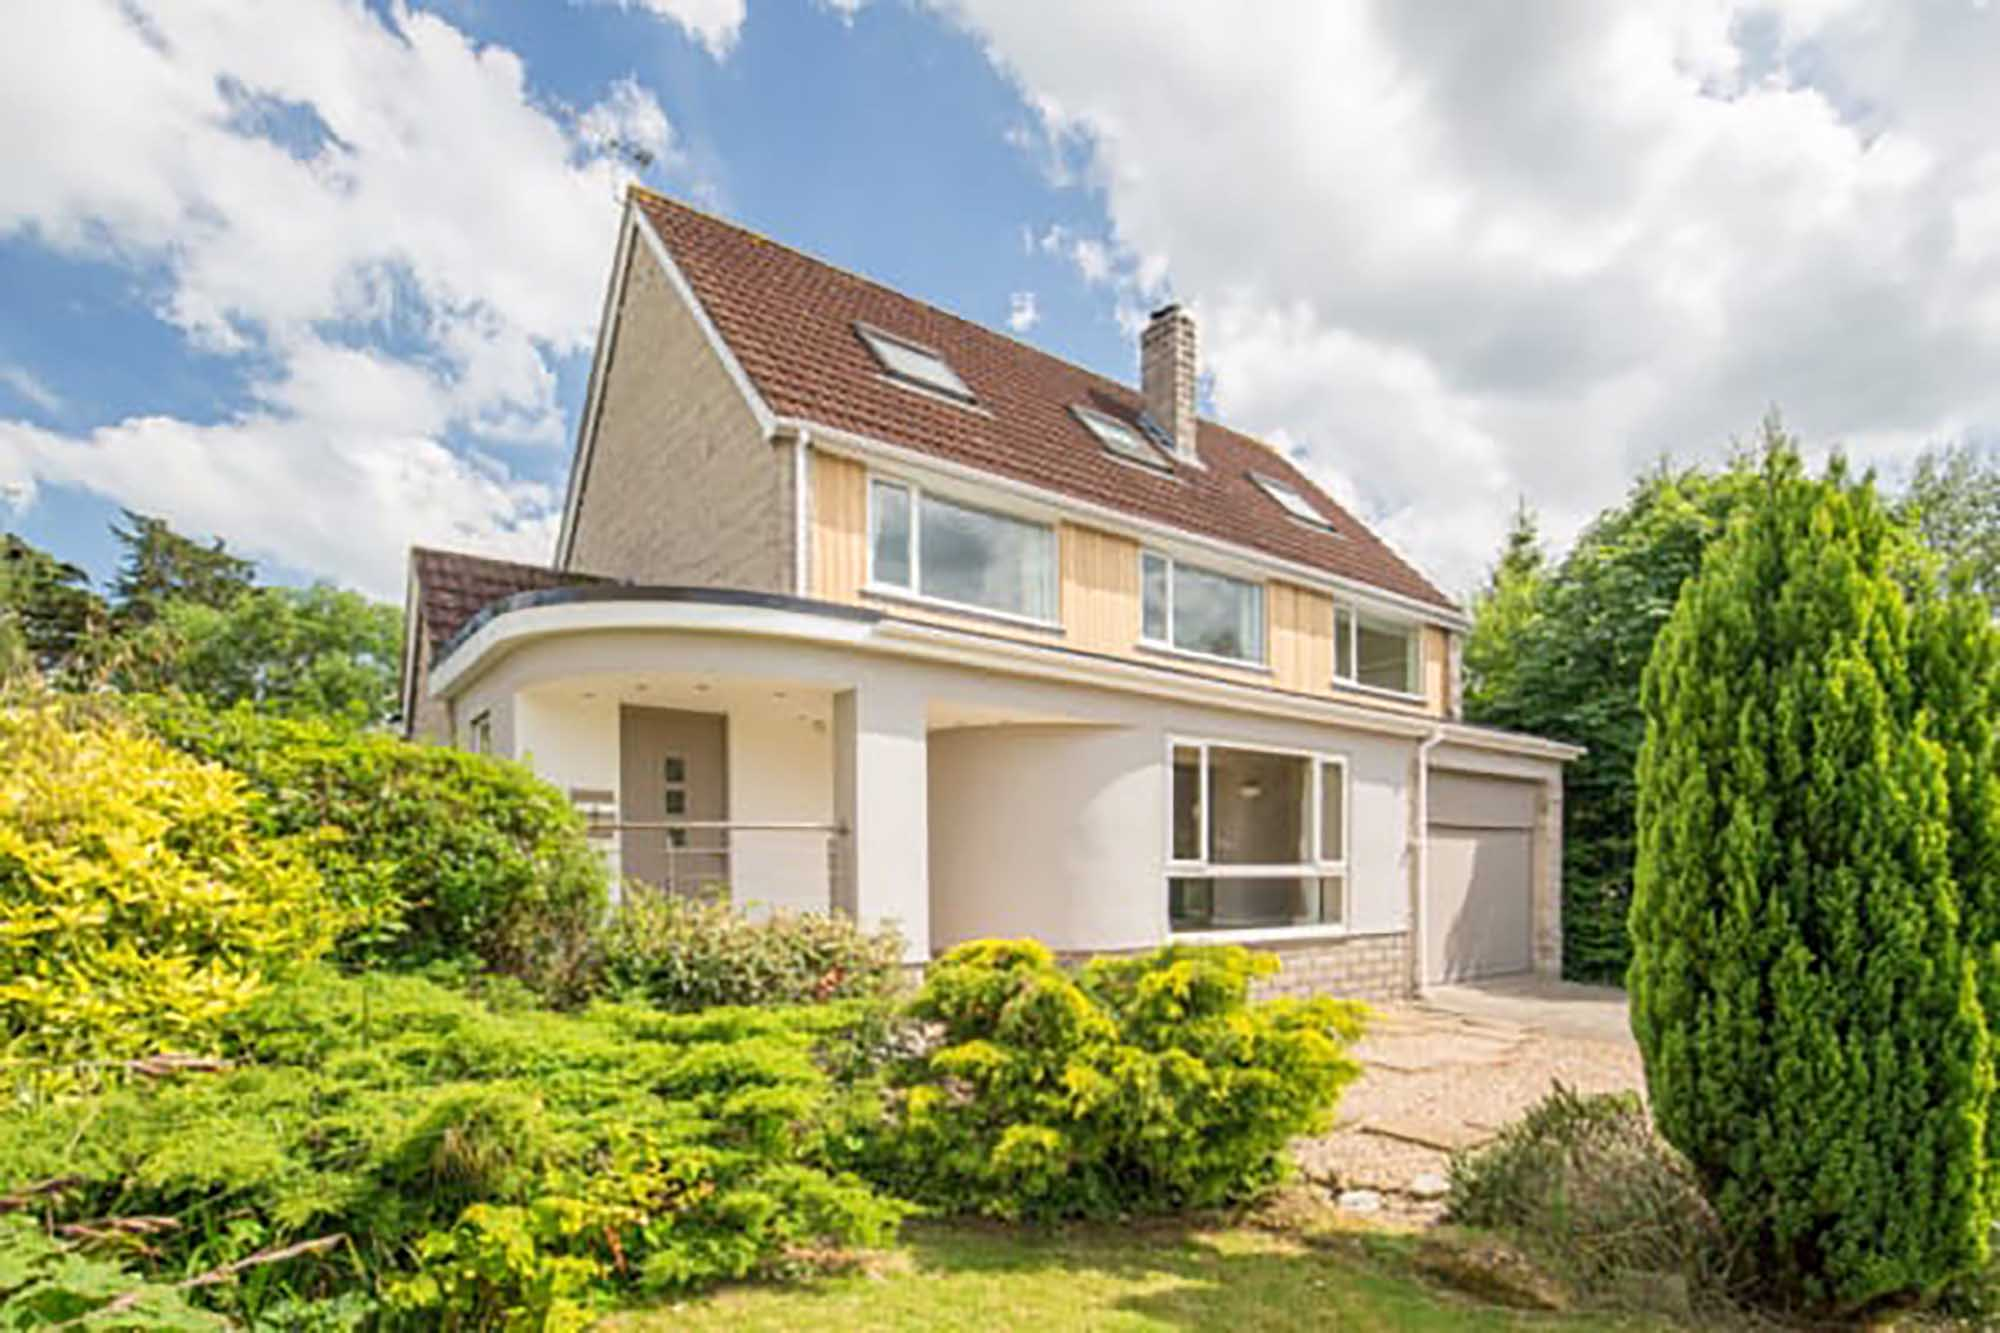 Spacious stylish family home in quiet location in the village of Baltonsborough